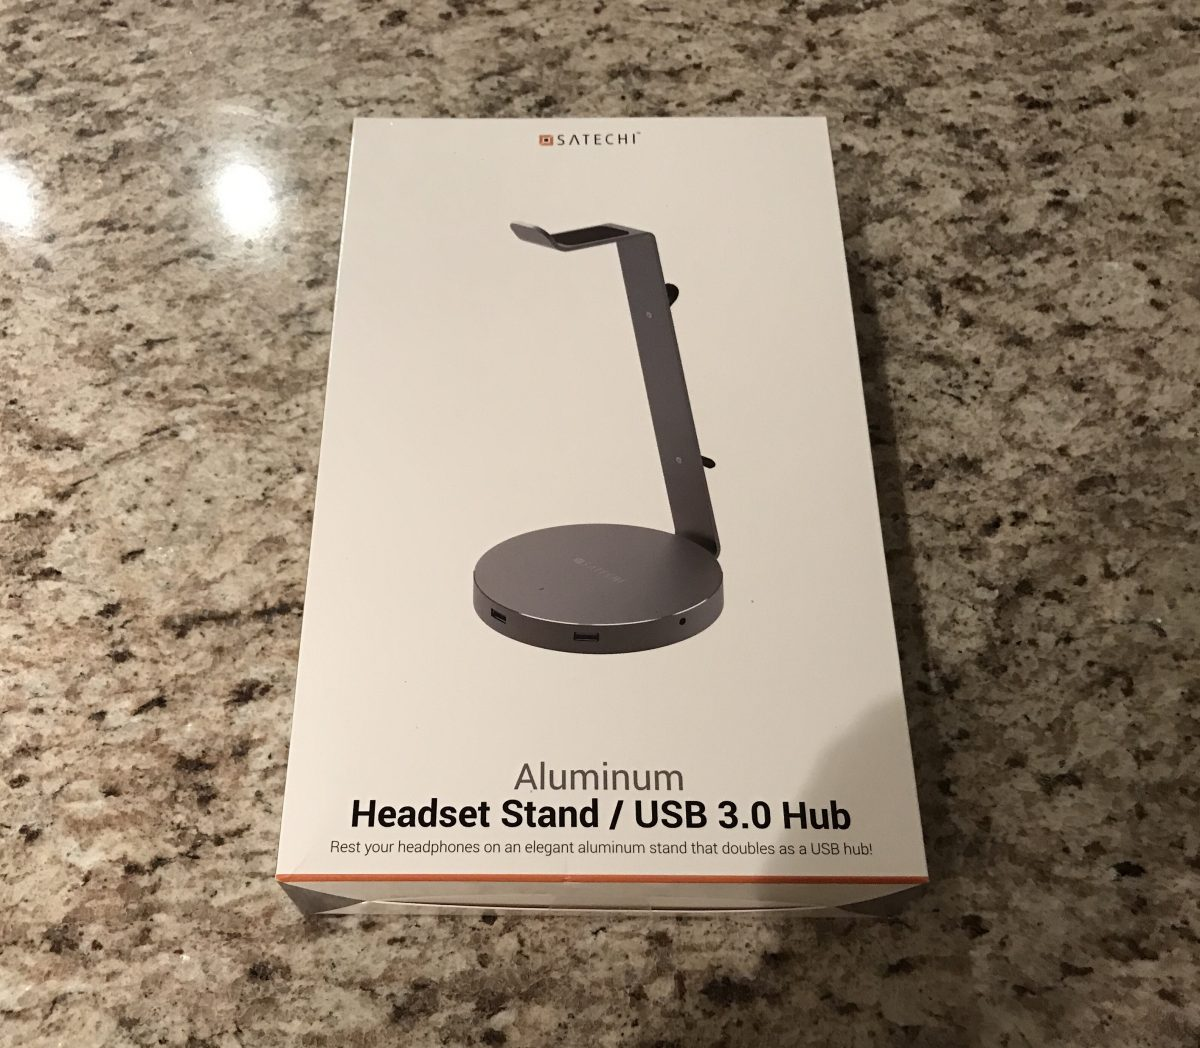 Satechi USB 3.0 Headphone Stand: A Place to Finally Sit, Charge & Display Your Headphones